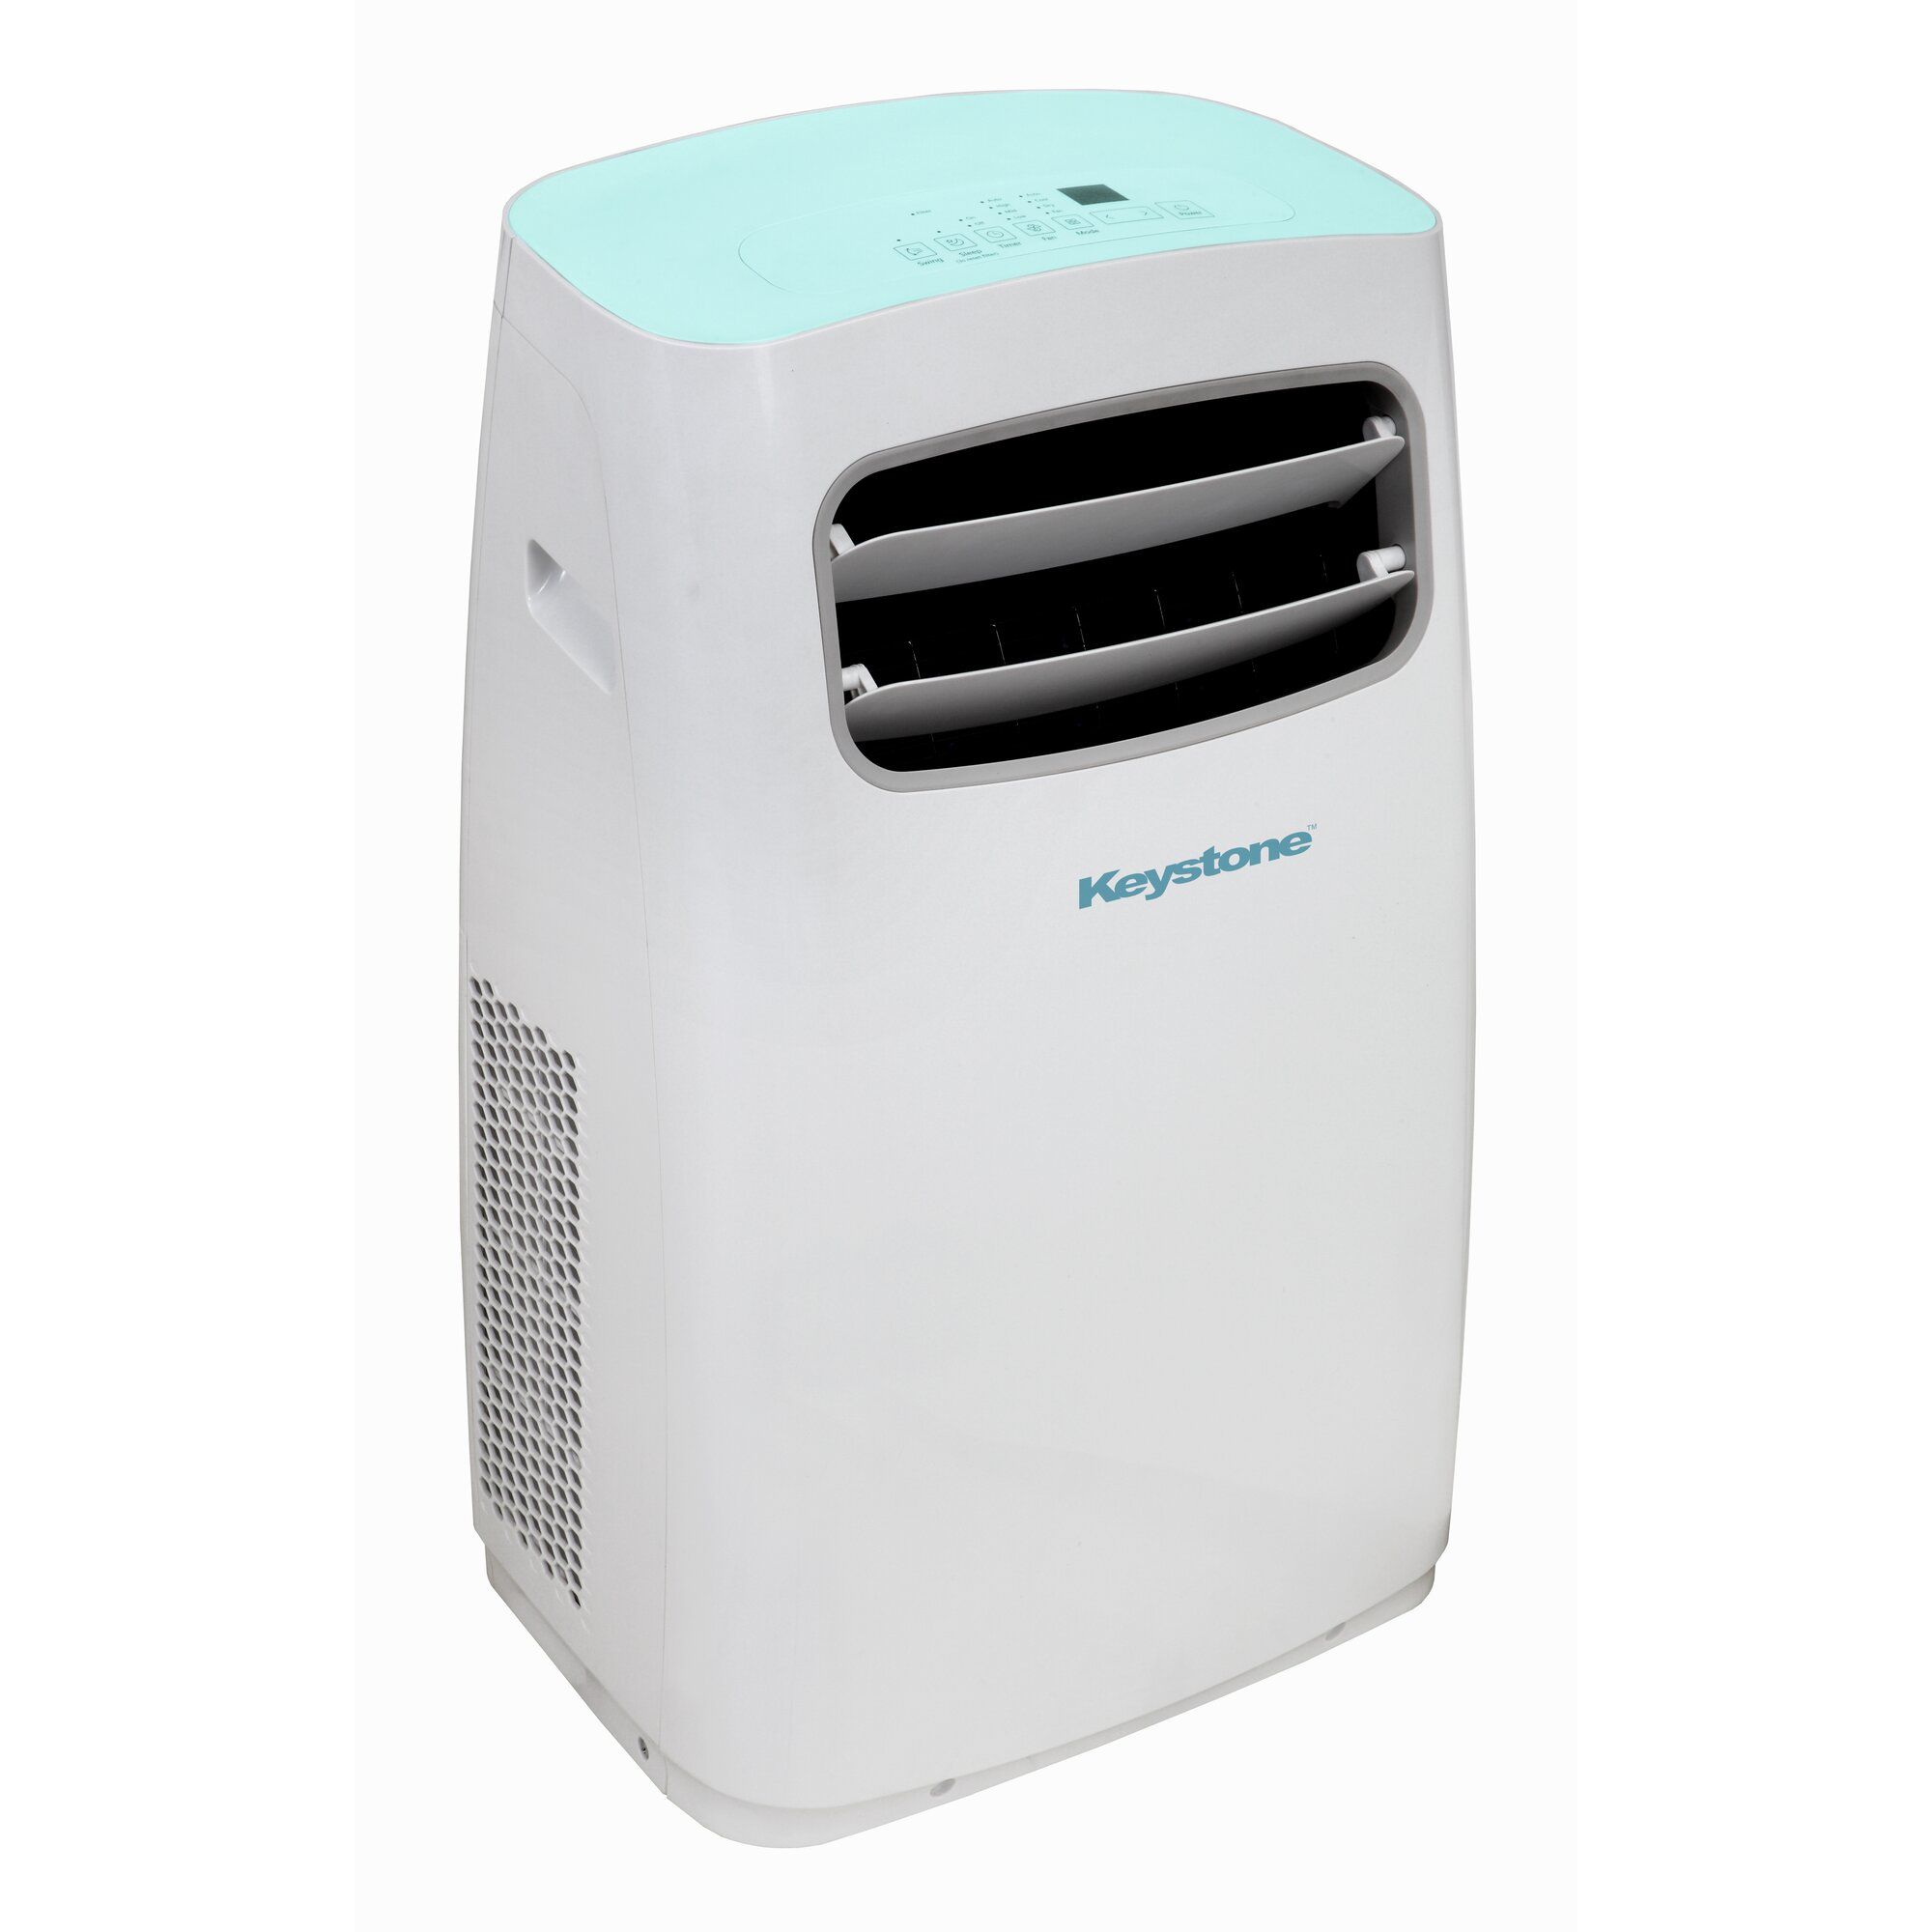 #487983 Keystone 12 000 BTU Portable Air Conditioner With Remote  Best 9823 12 000 Btu Air Conditioner Room Size photos with 2000x2000 px on helpvideos.info - Air Conditioners, Air Coolers and more